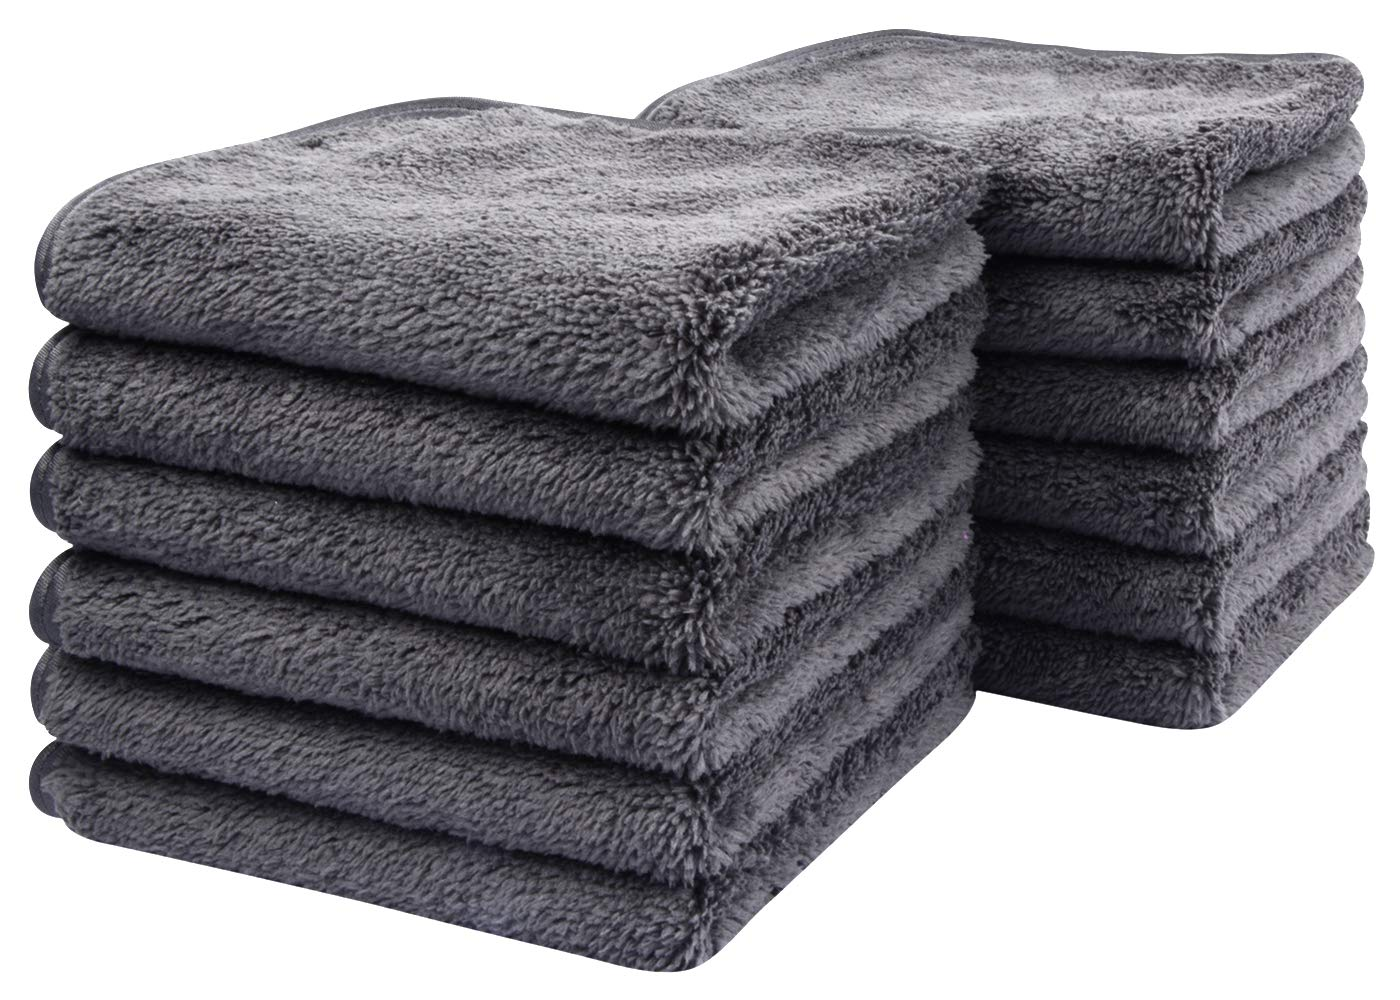 Sinland Microfiber Face Cloths For Bath Reusable Makeup Remover Cloth Ultra Soft and Absorbent Washcloths For Baby 12Inch x 12Inch (12pack, grey)